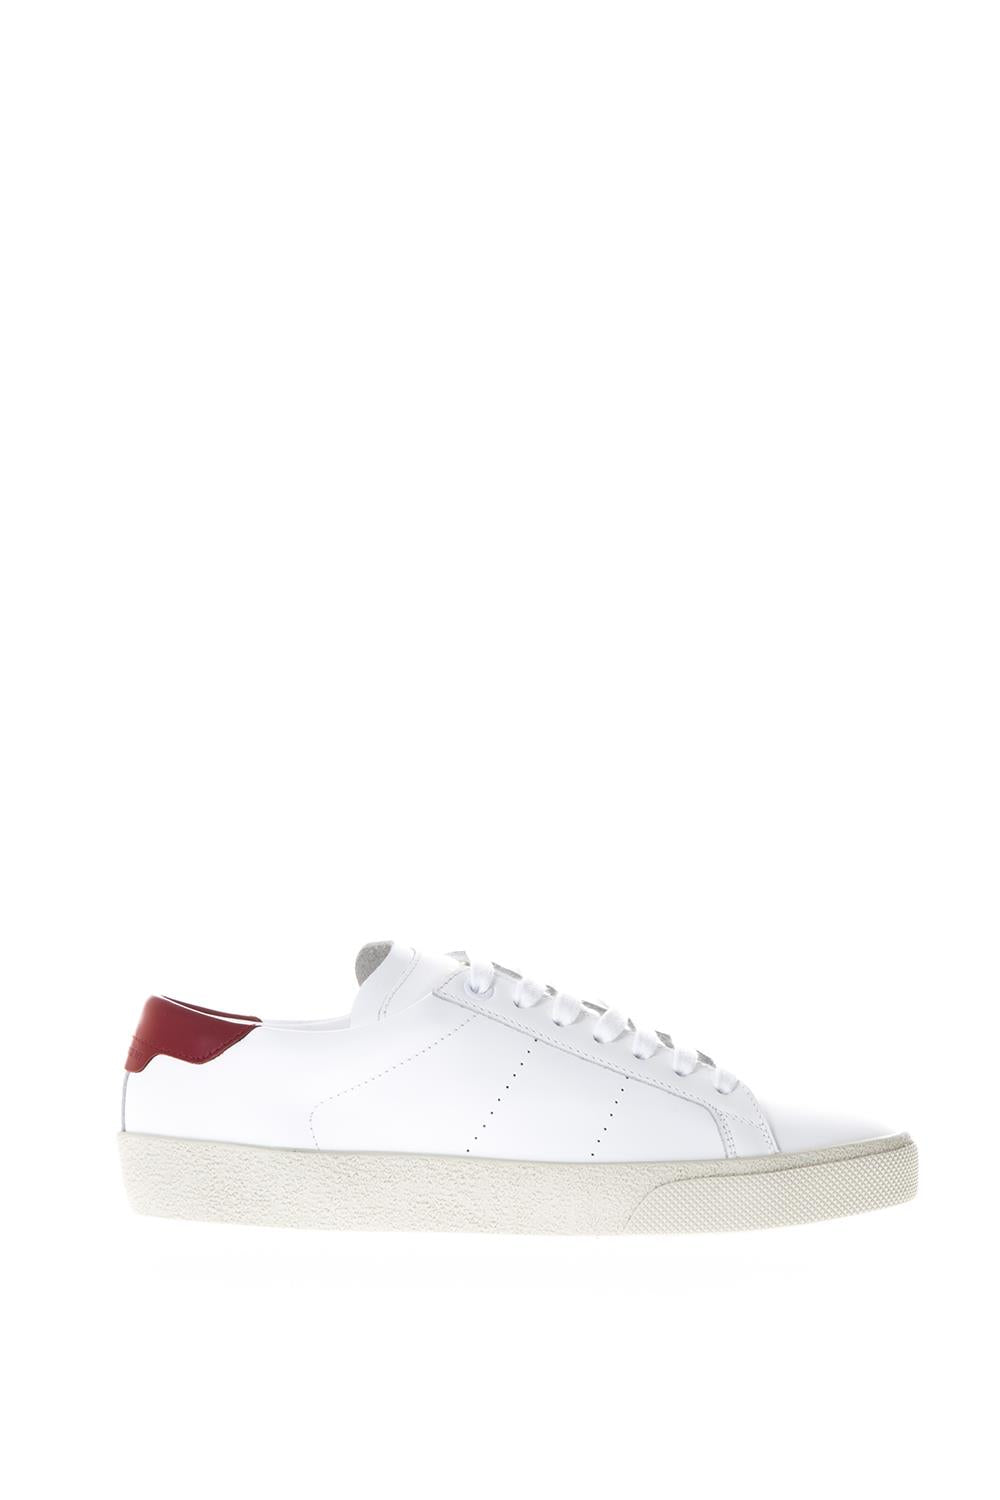 SAINT LAURENT SL 06 CLASSIC COURT SNEAKERS